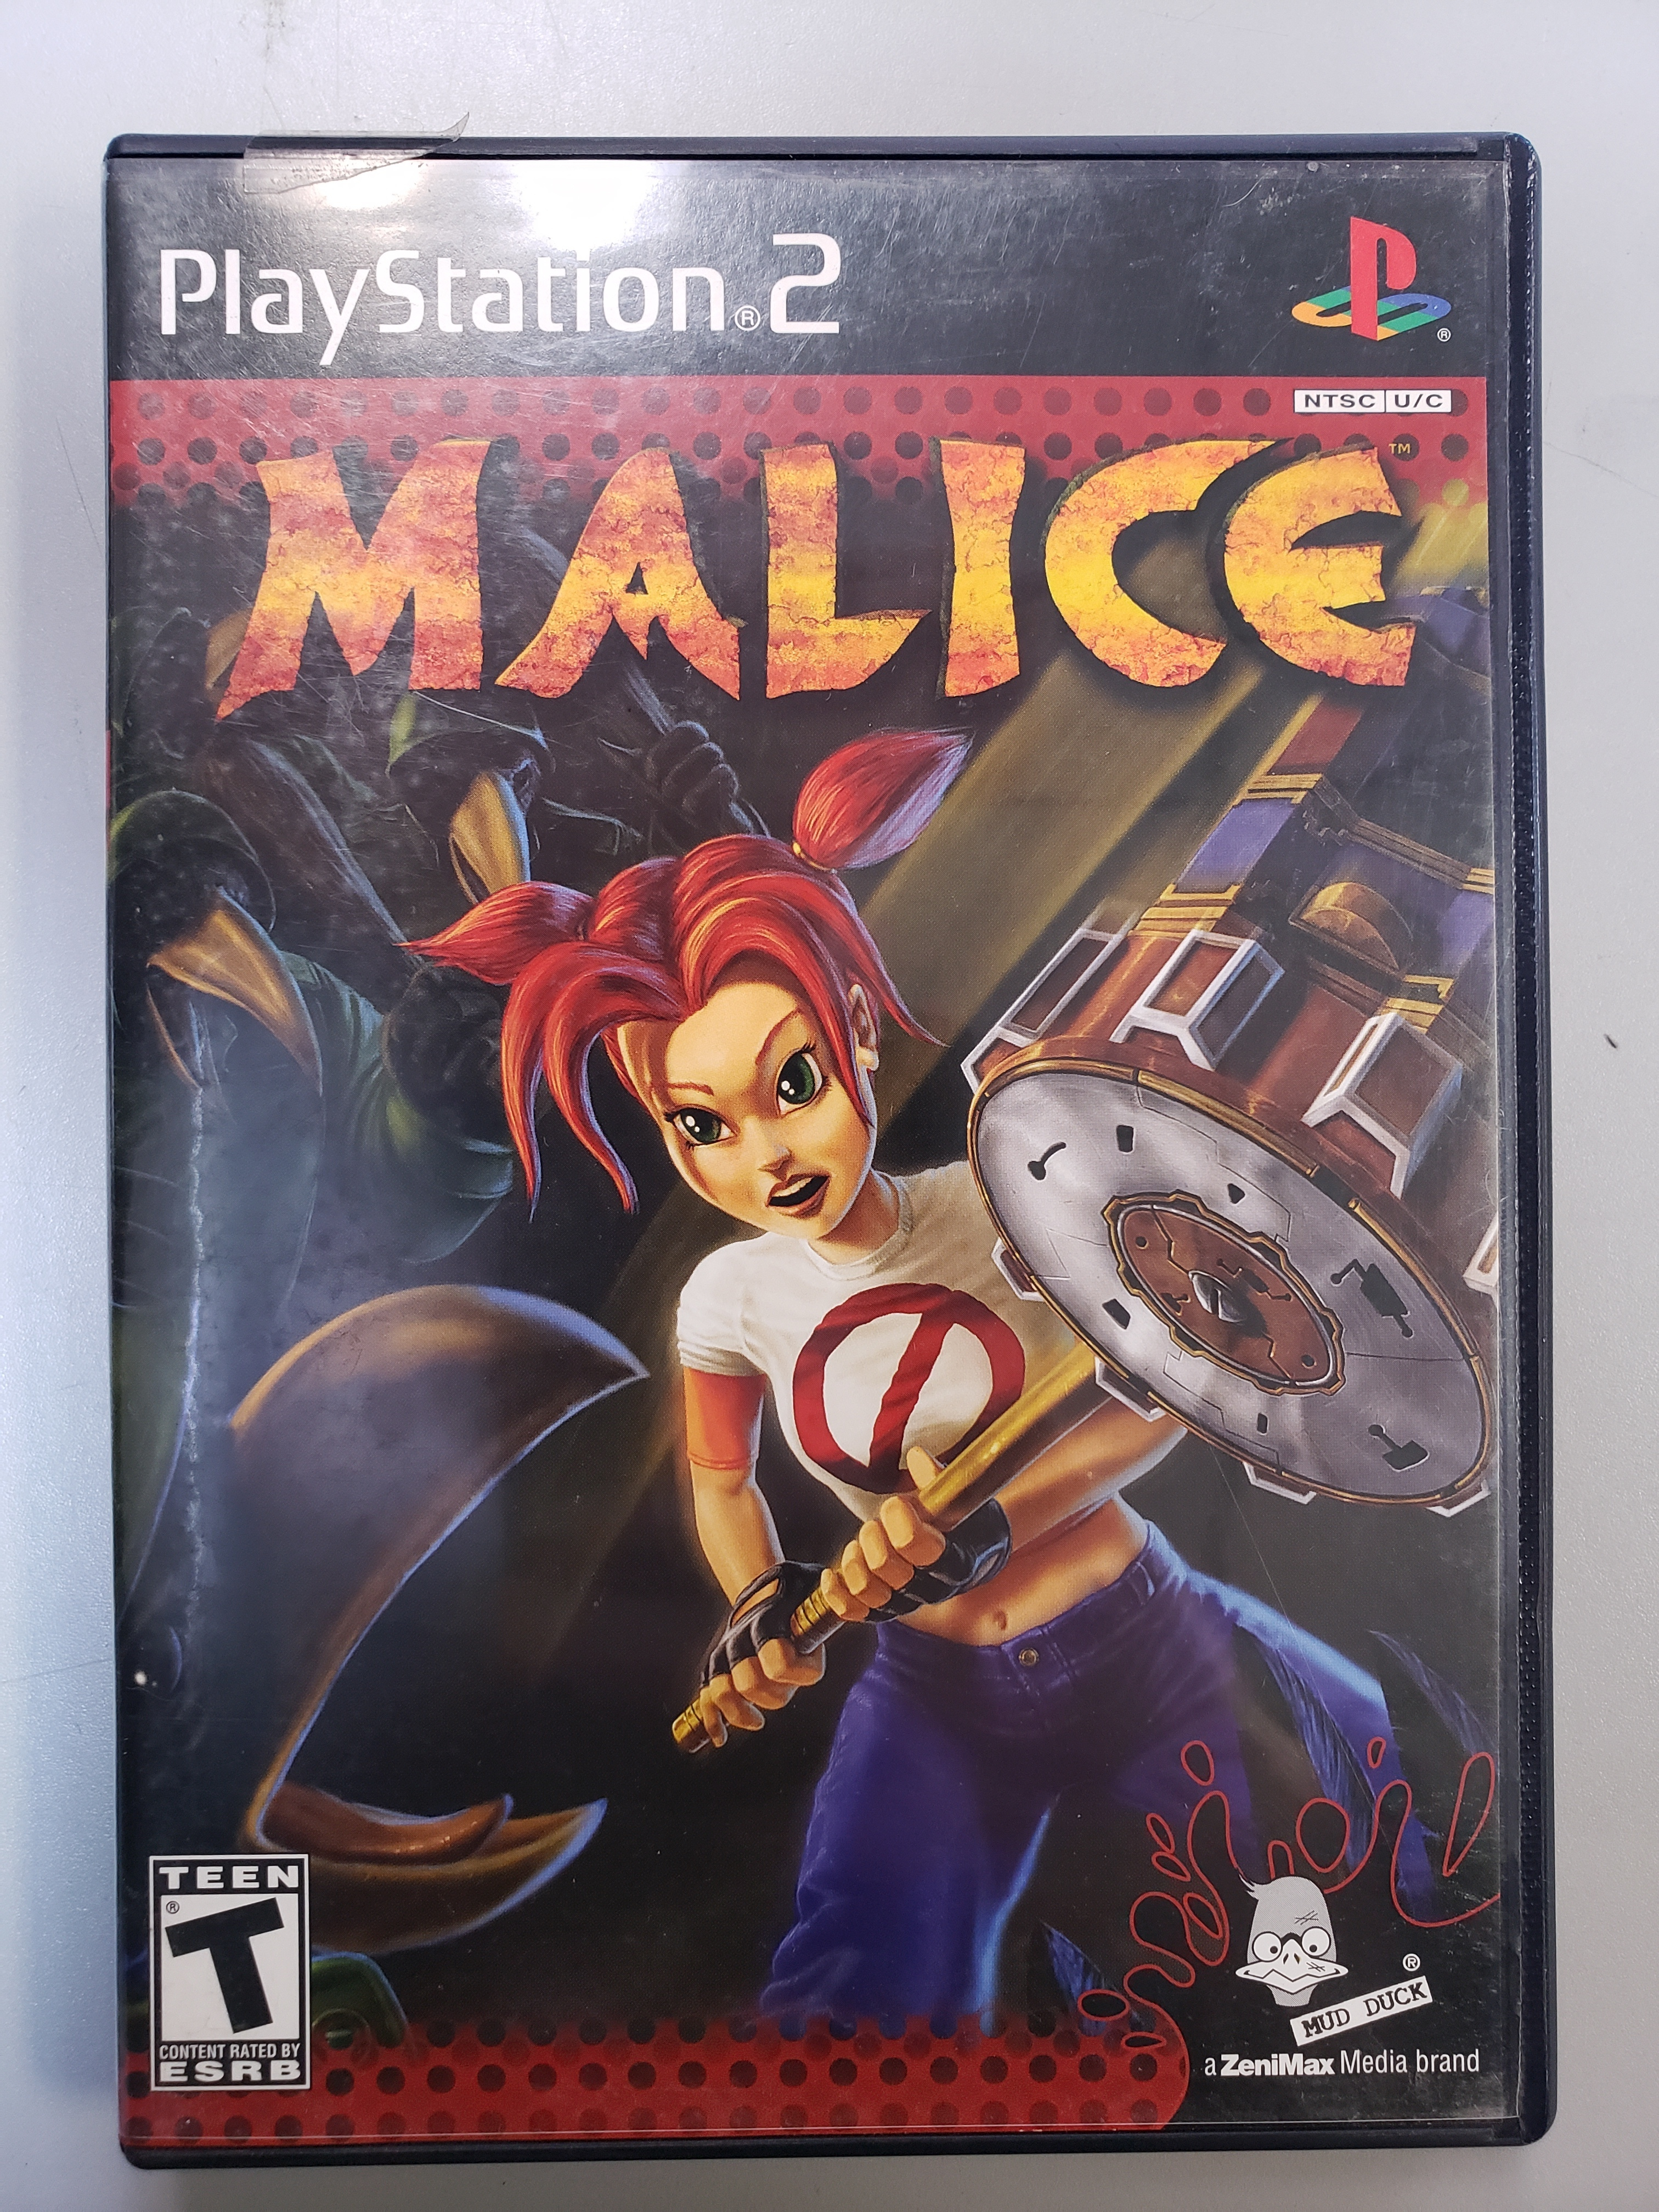 MALICE - PS2 GAME